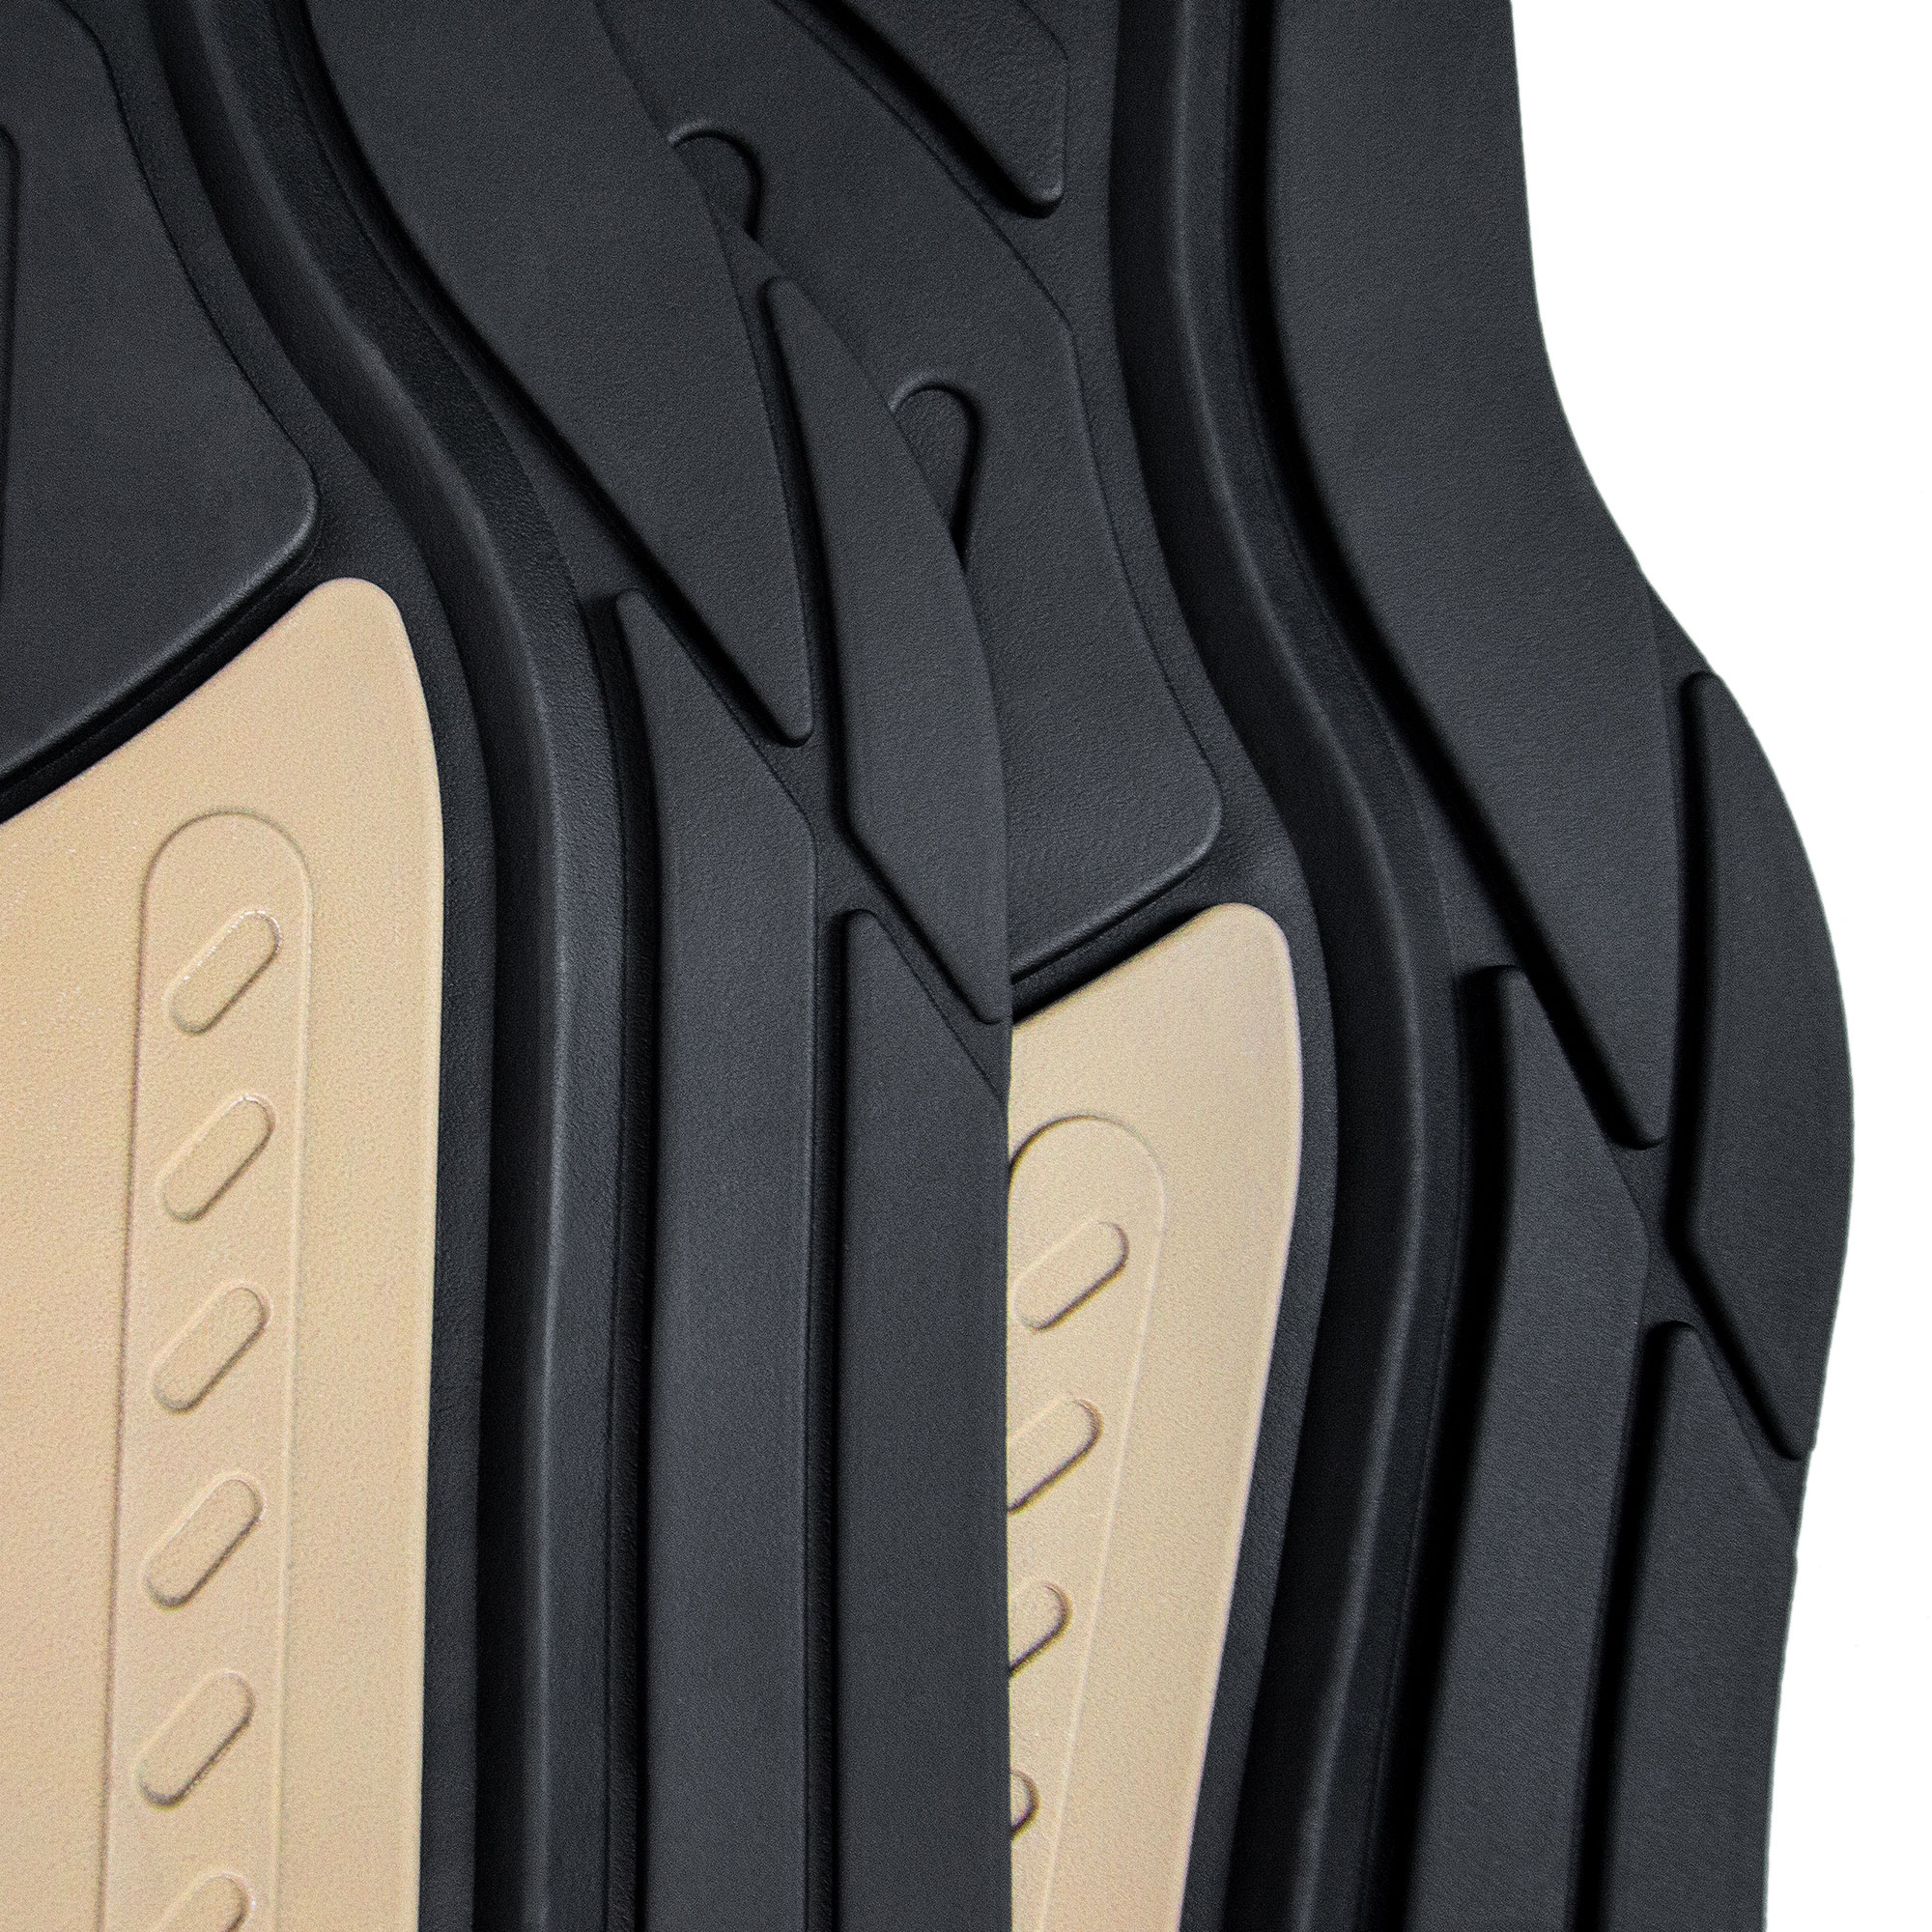 Car-Floor-Mats-for-All-Weather-Rubber-2-Tone-Design-4pc-Set-Heavy-Duty thumbnail 4